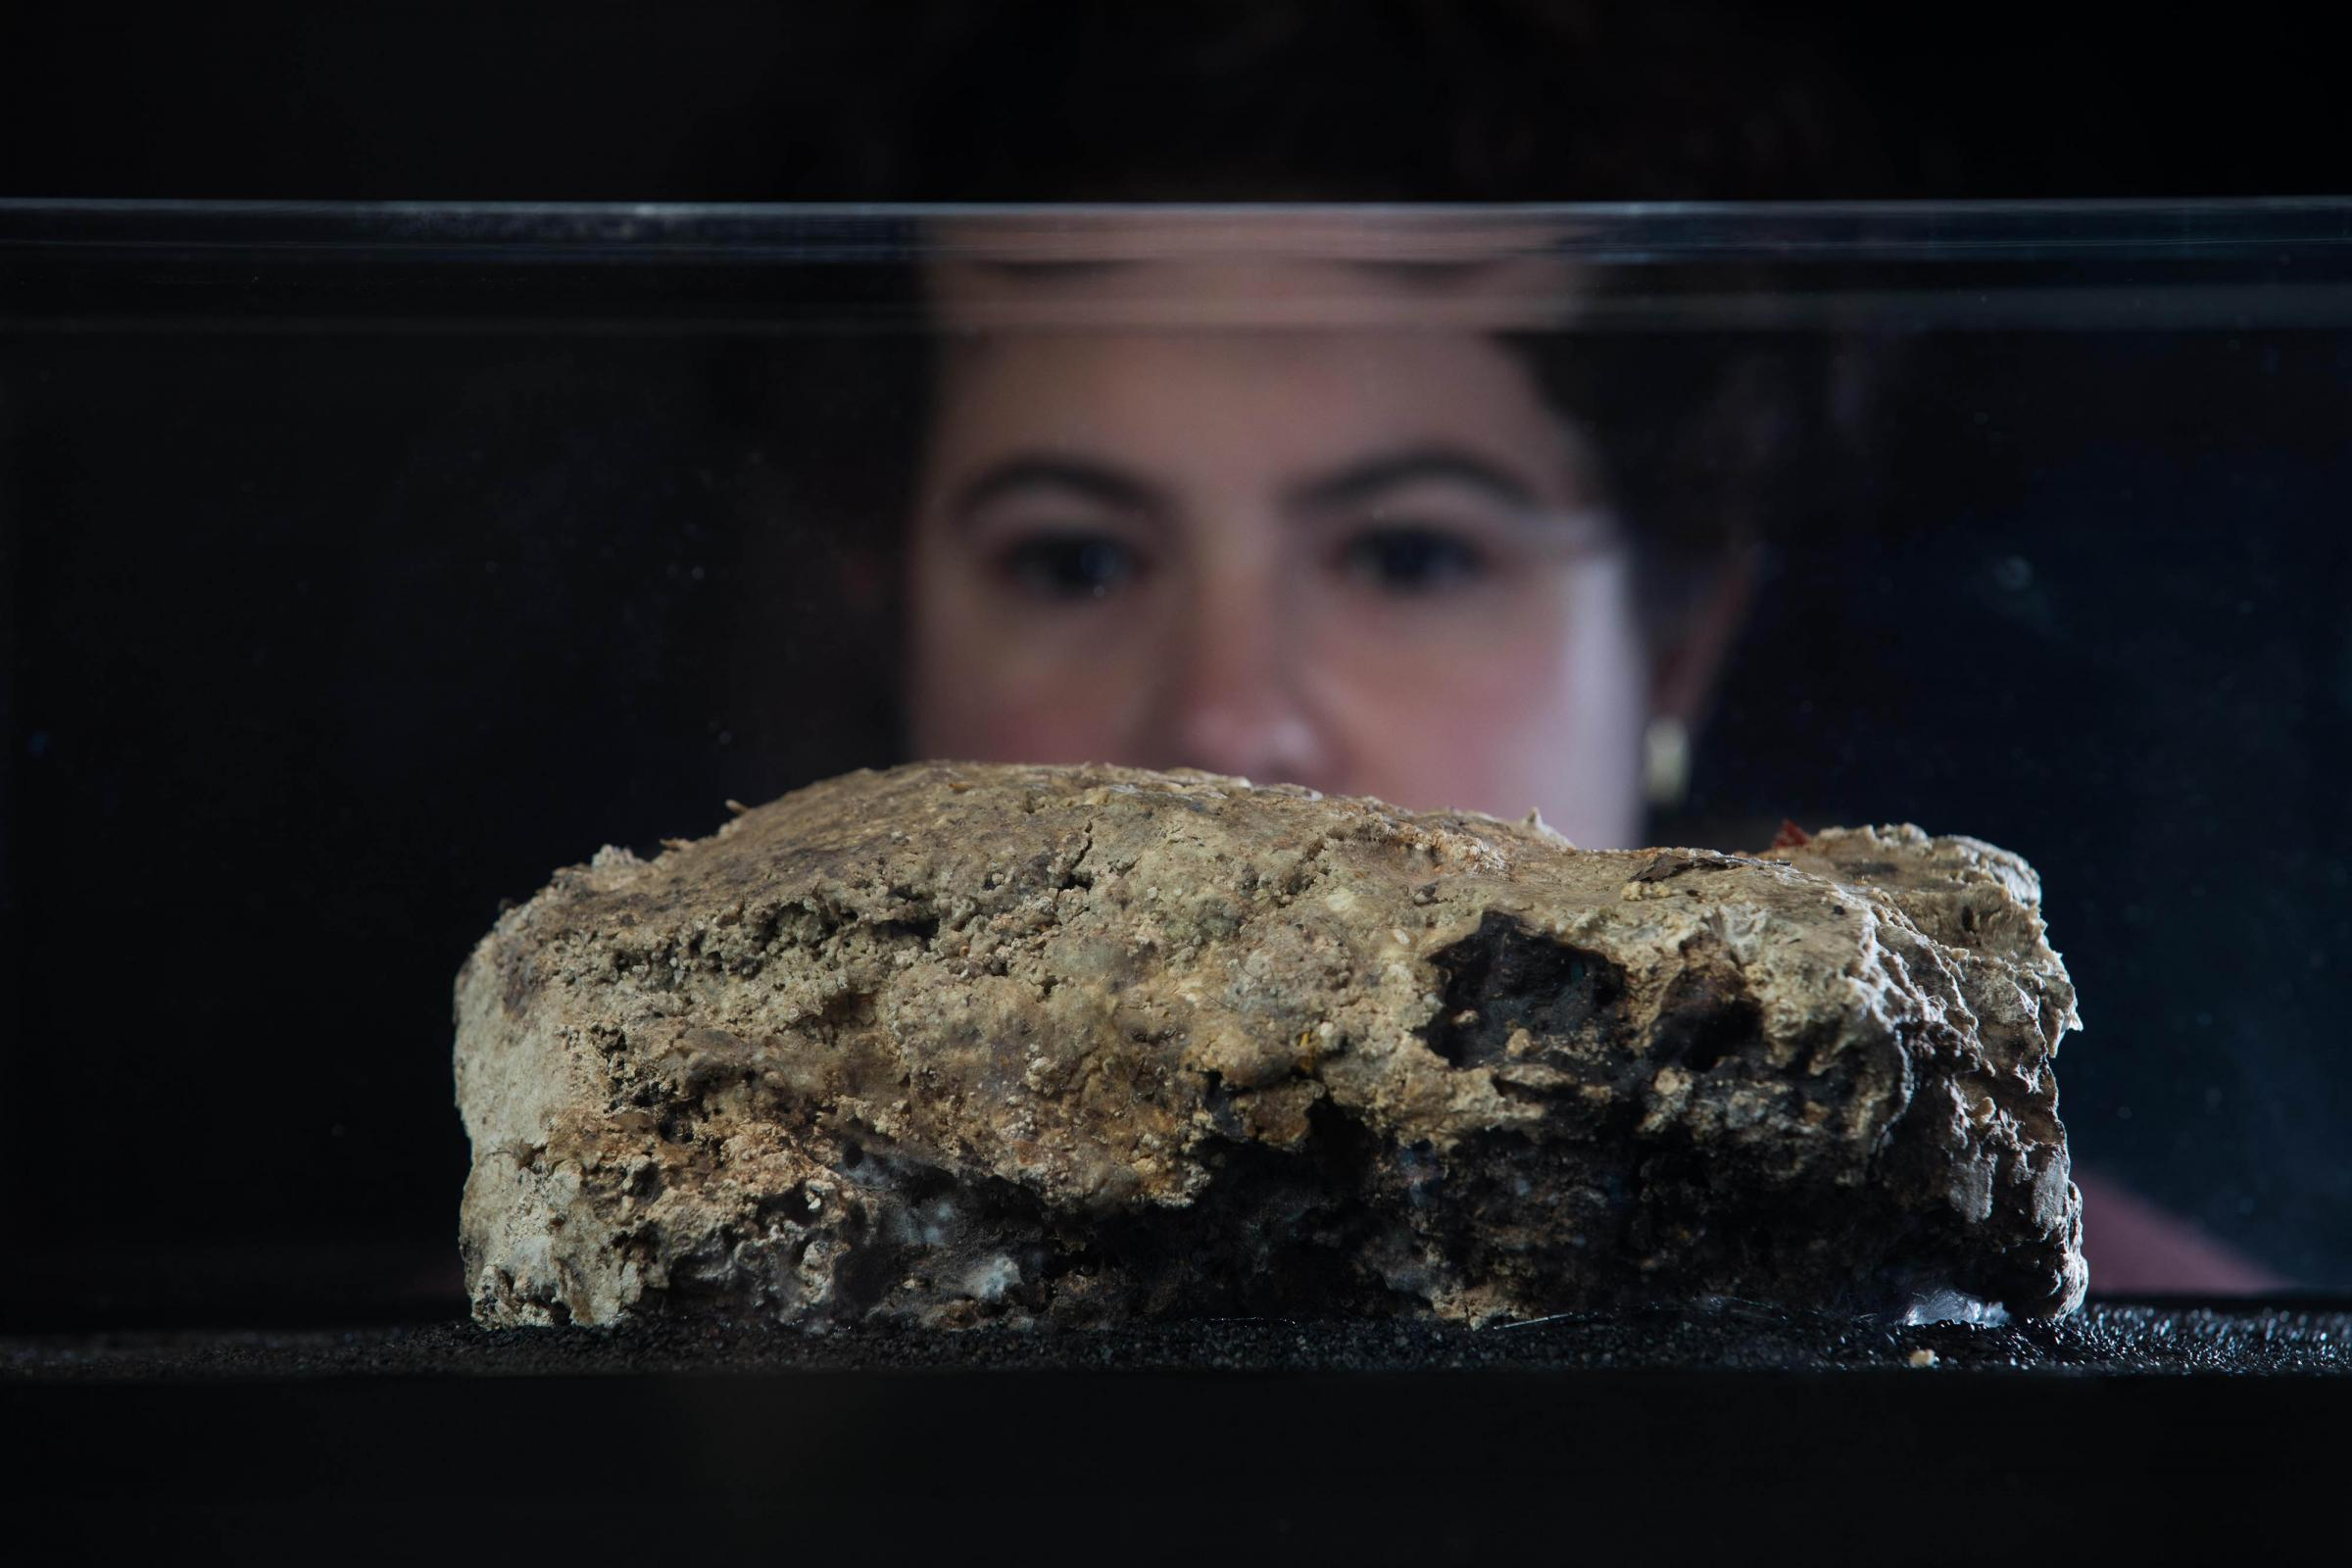 Katie Balcombe looks at a section of fatberg on display at the Museum of London (David Parry/PA)